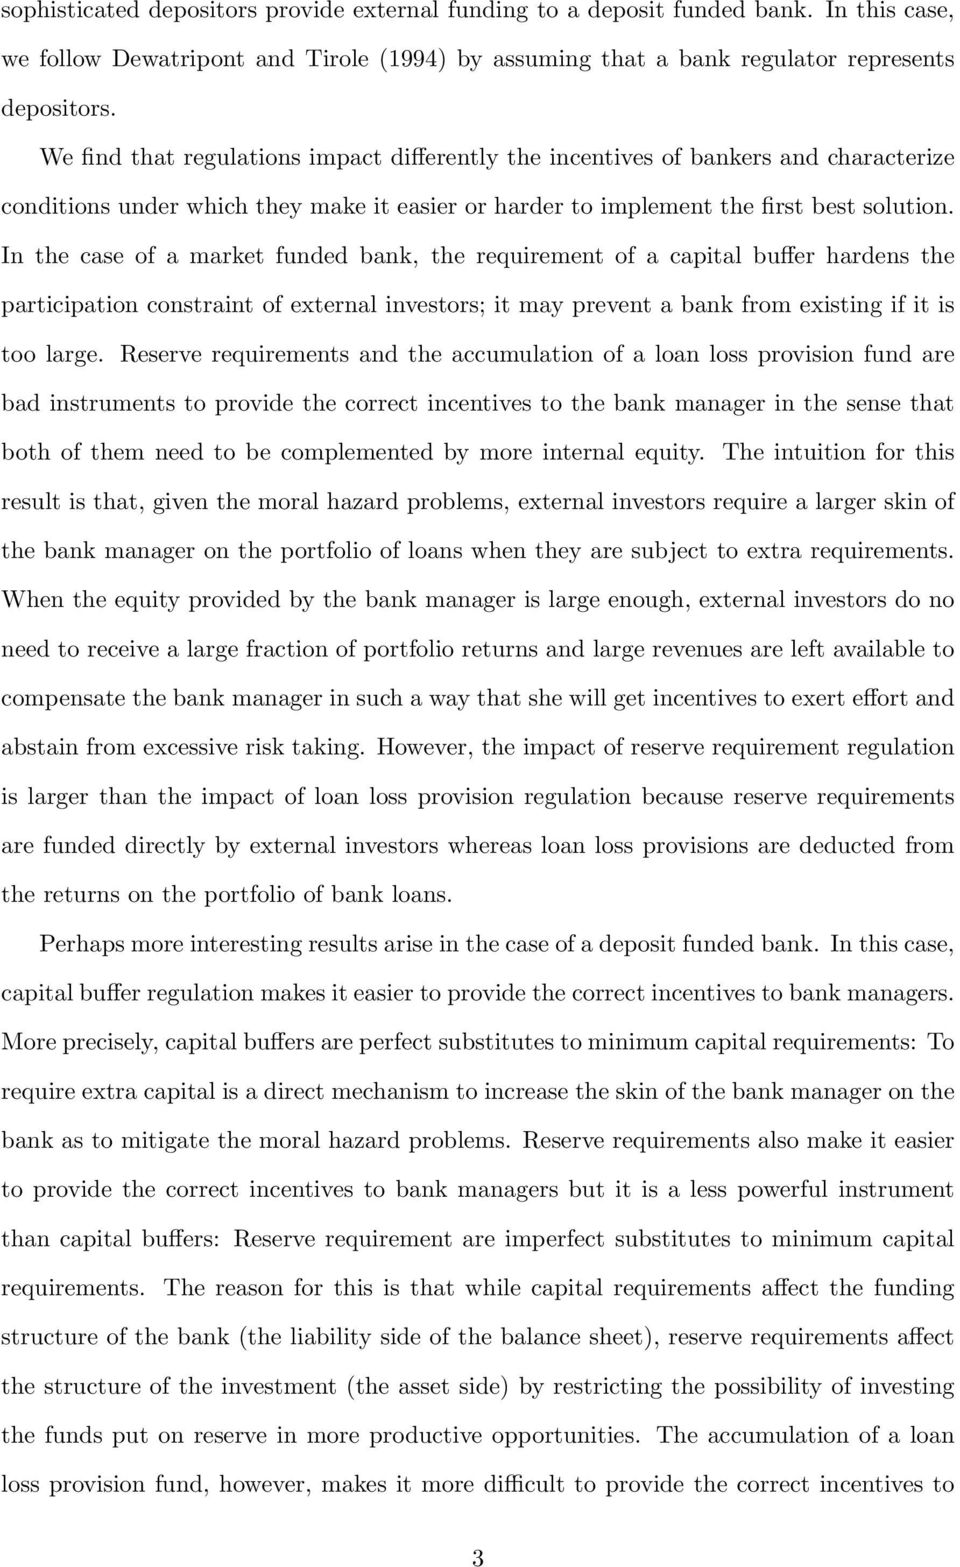 In the case of a market funded bank, the requirement of a capital buffer hardens the participation constraint of external investors; it may prevent a bank from existing if it is too large.